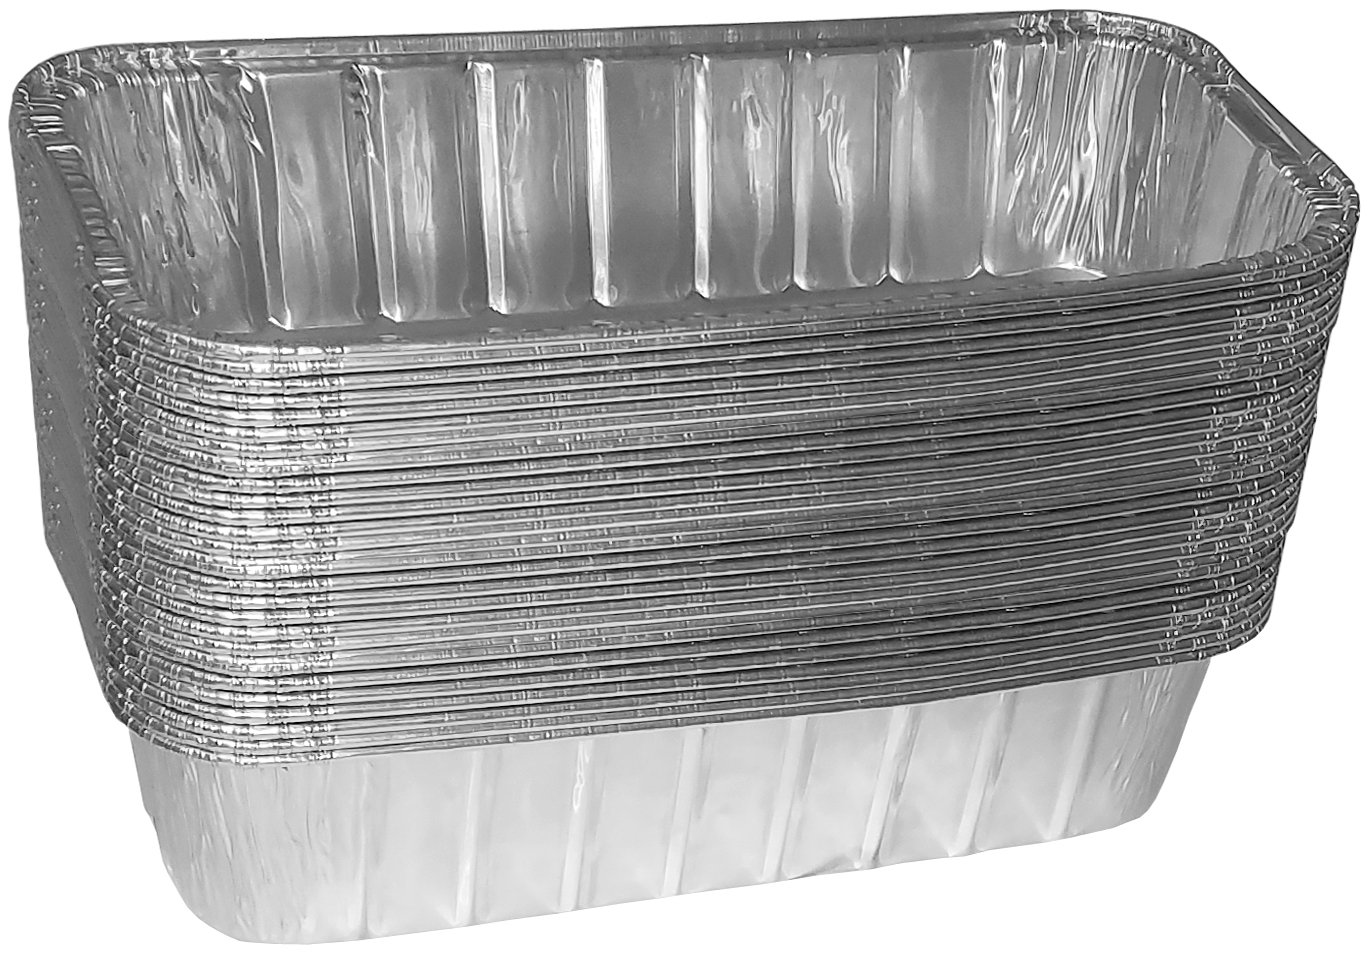 TYH Supplies Aluminum Foil BBQ Grease Drip Pans for Weber Genesis II LX 400 & 600 Series, Summit 400 & 600 Series, and Summit Gold & Platinum 6-Burner Model Gas Grill 9.75'' x 3.75'', 30-Pack